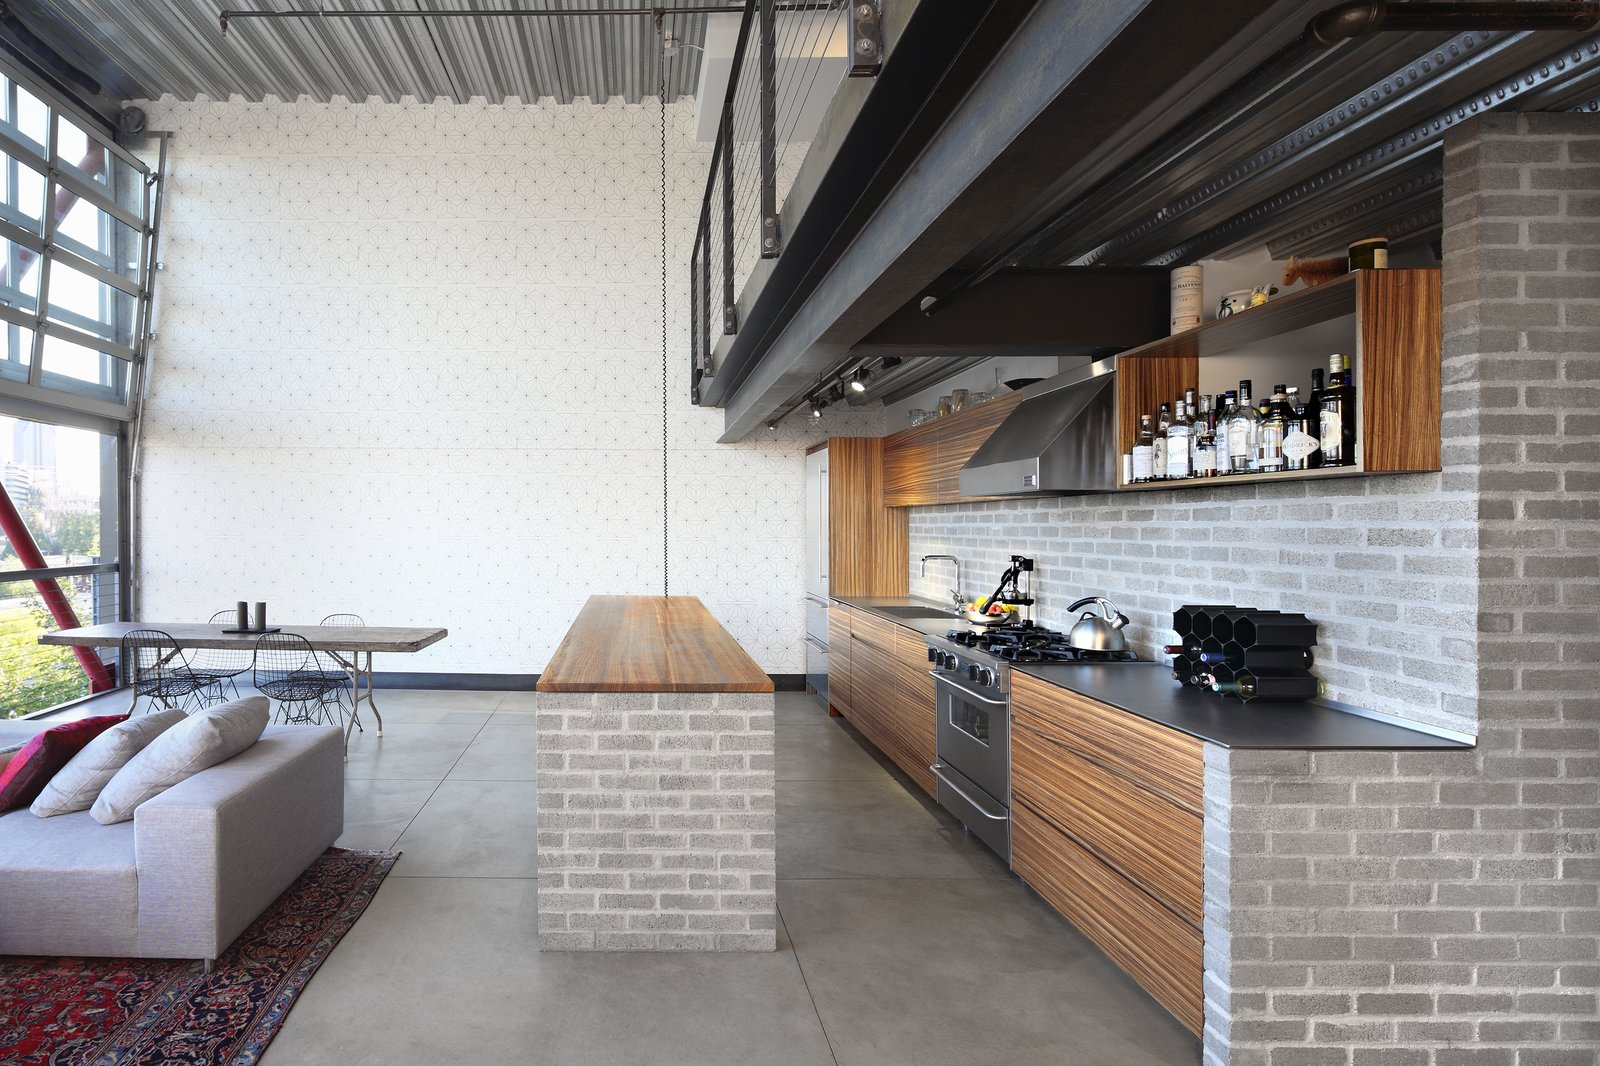 Kitchen, Wood, Range Hood, Concrete, Wall Oven, Track, Drop In, Brick, Rug, Wood, Refrigerator, Range, Open, and Beverage Center  Best Kitchen Open Refrigerator Brick Drop In Concrete Photos from Before & After: Two Game-Changing Kitchen Renovations by a Seattle Studio